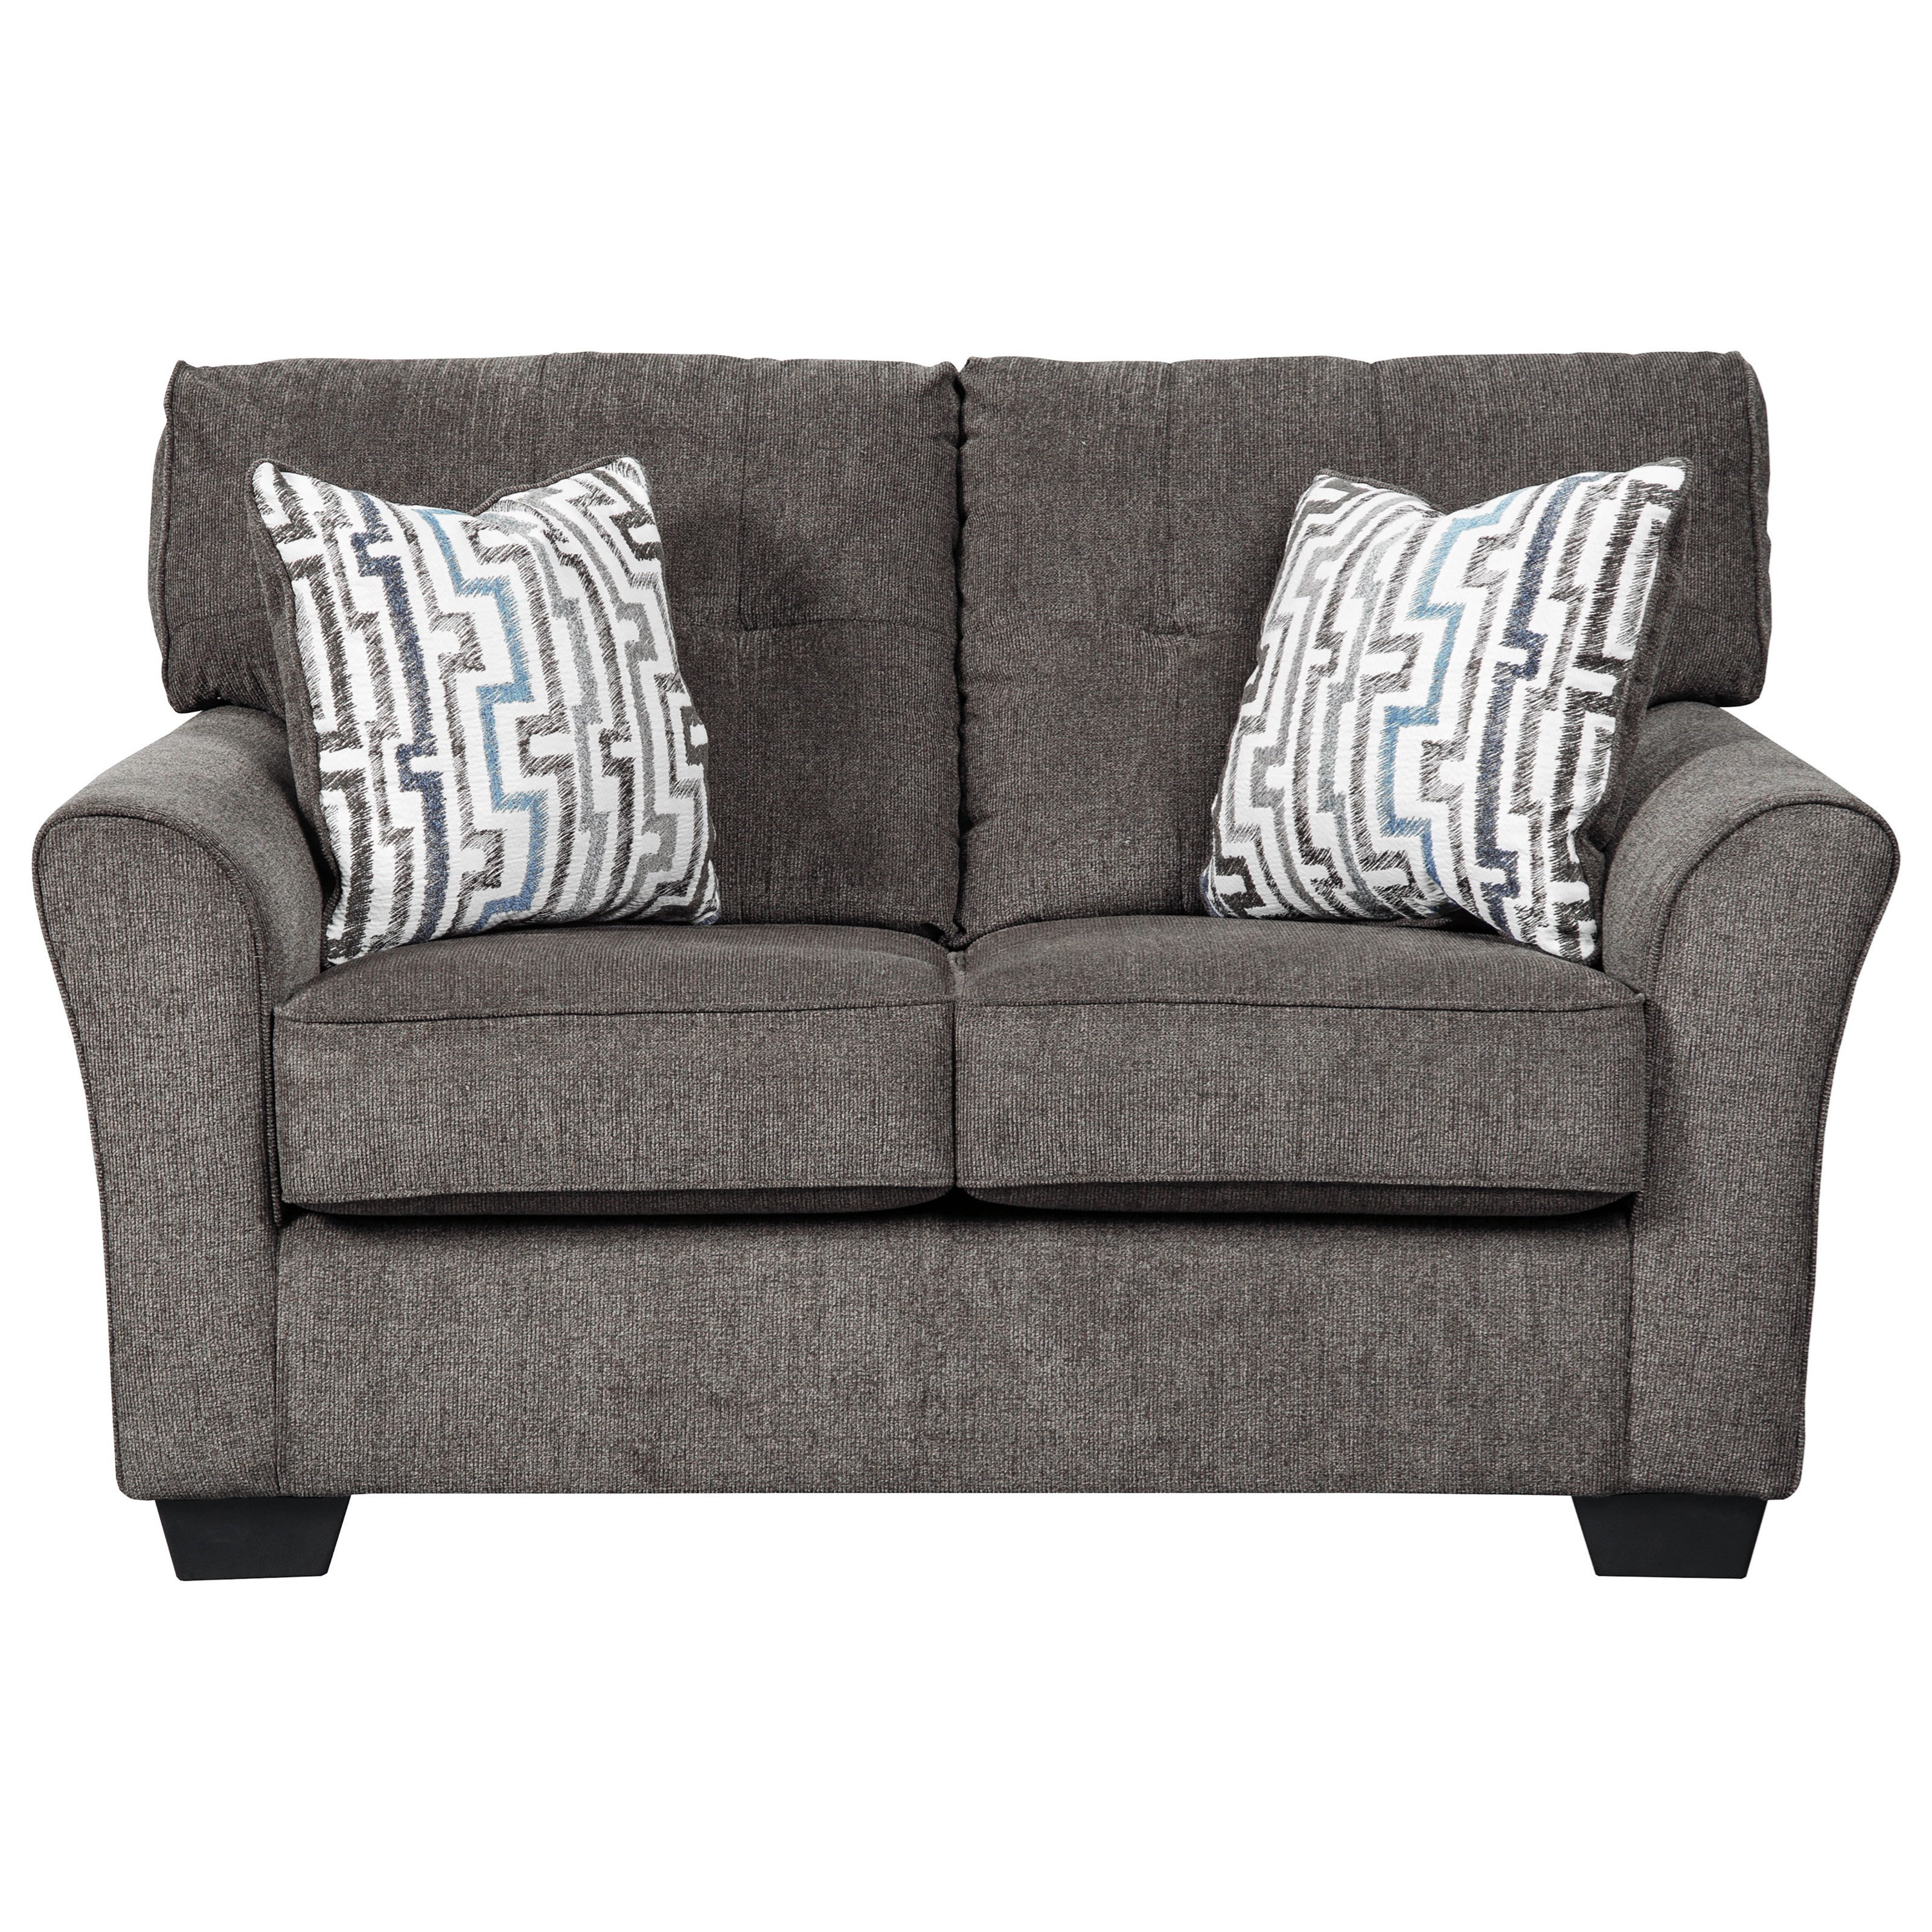 Alsen Loveseat by Benchcraft at Fisher Home Furnishings